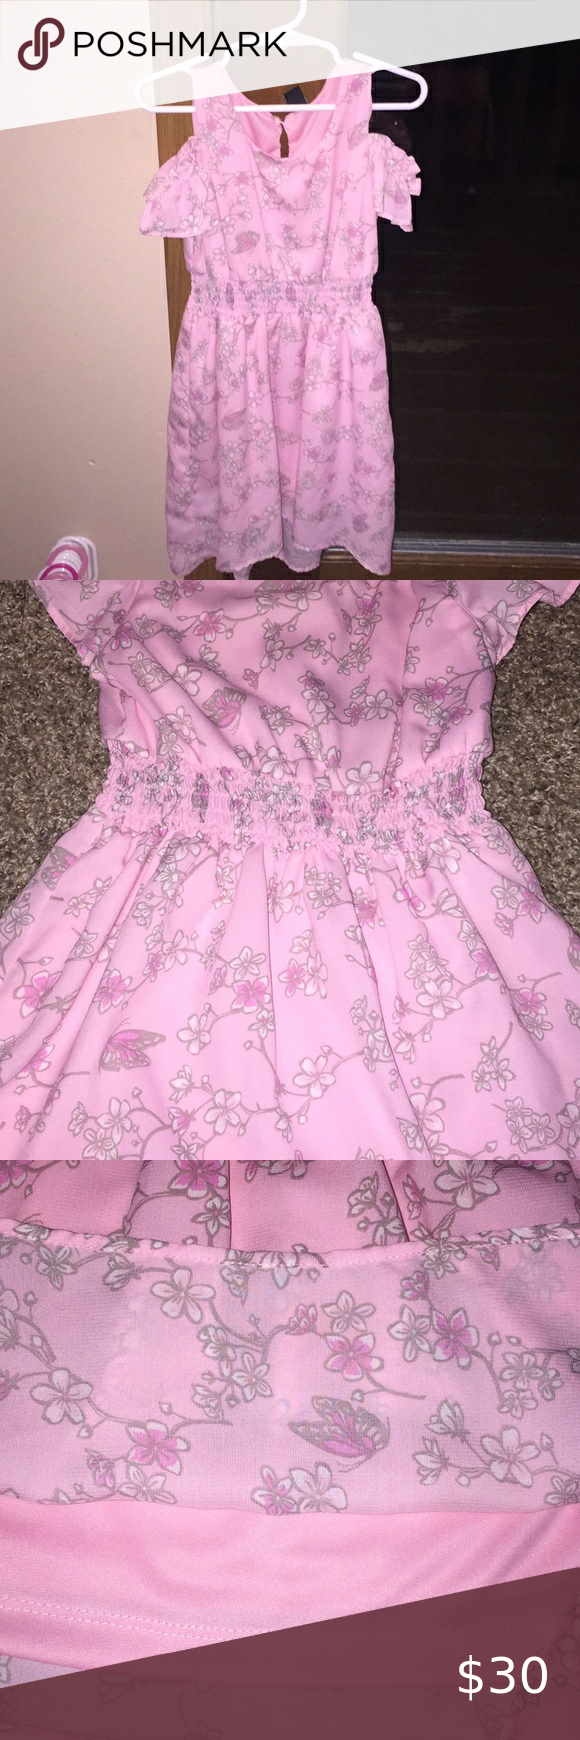 Star Pride Pink Lined Dress White Floral Detail Light Pink Floral Dress Pink Floral Dress Smocked Baby Dresses [ 1740 x 580 Pixel ]